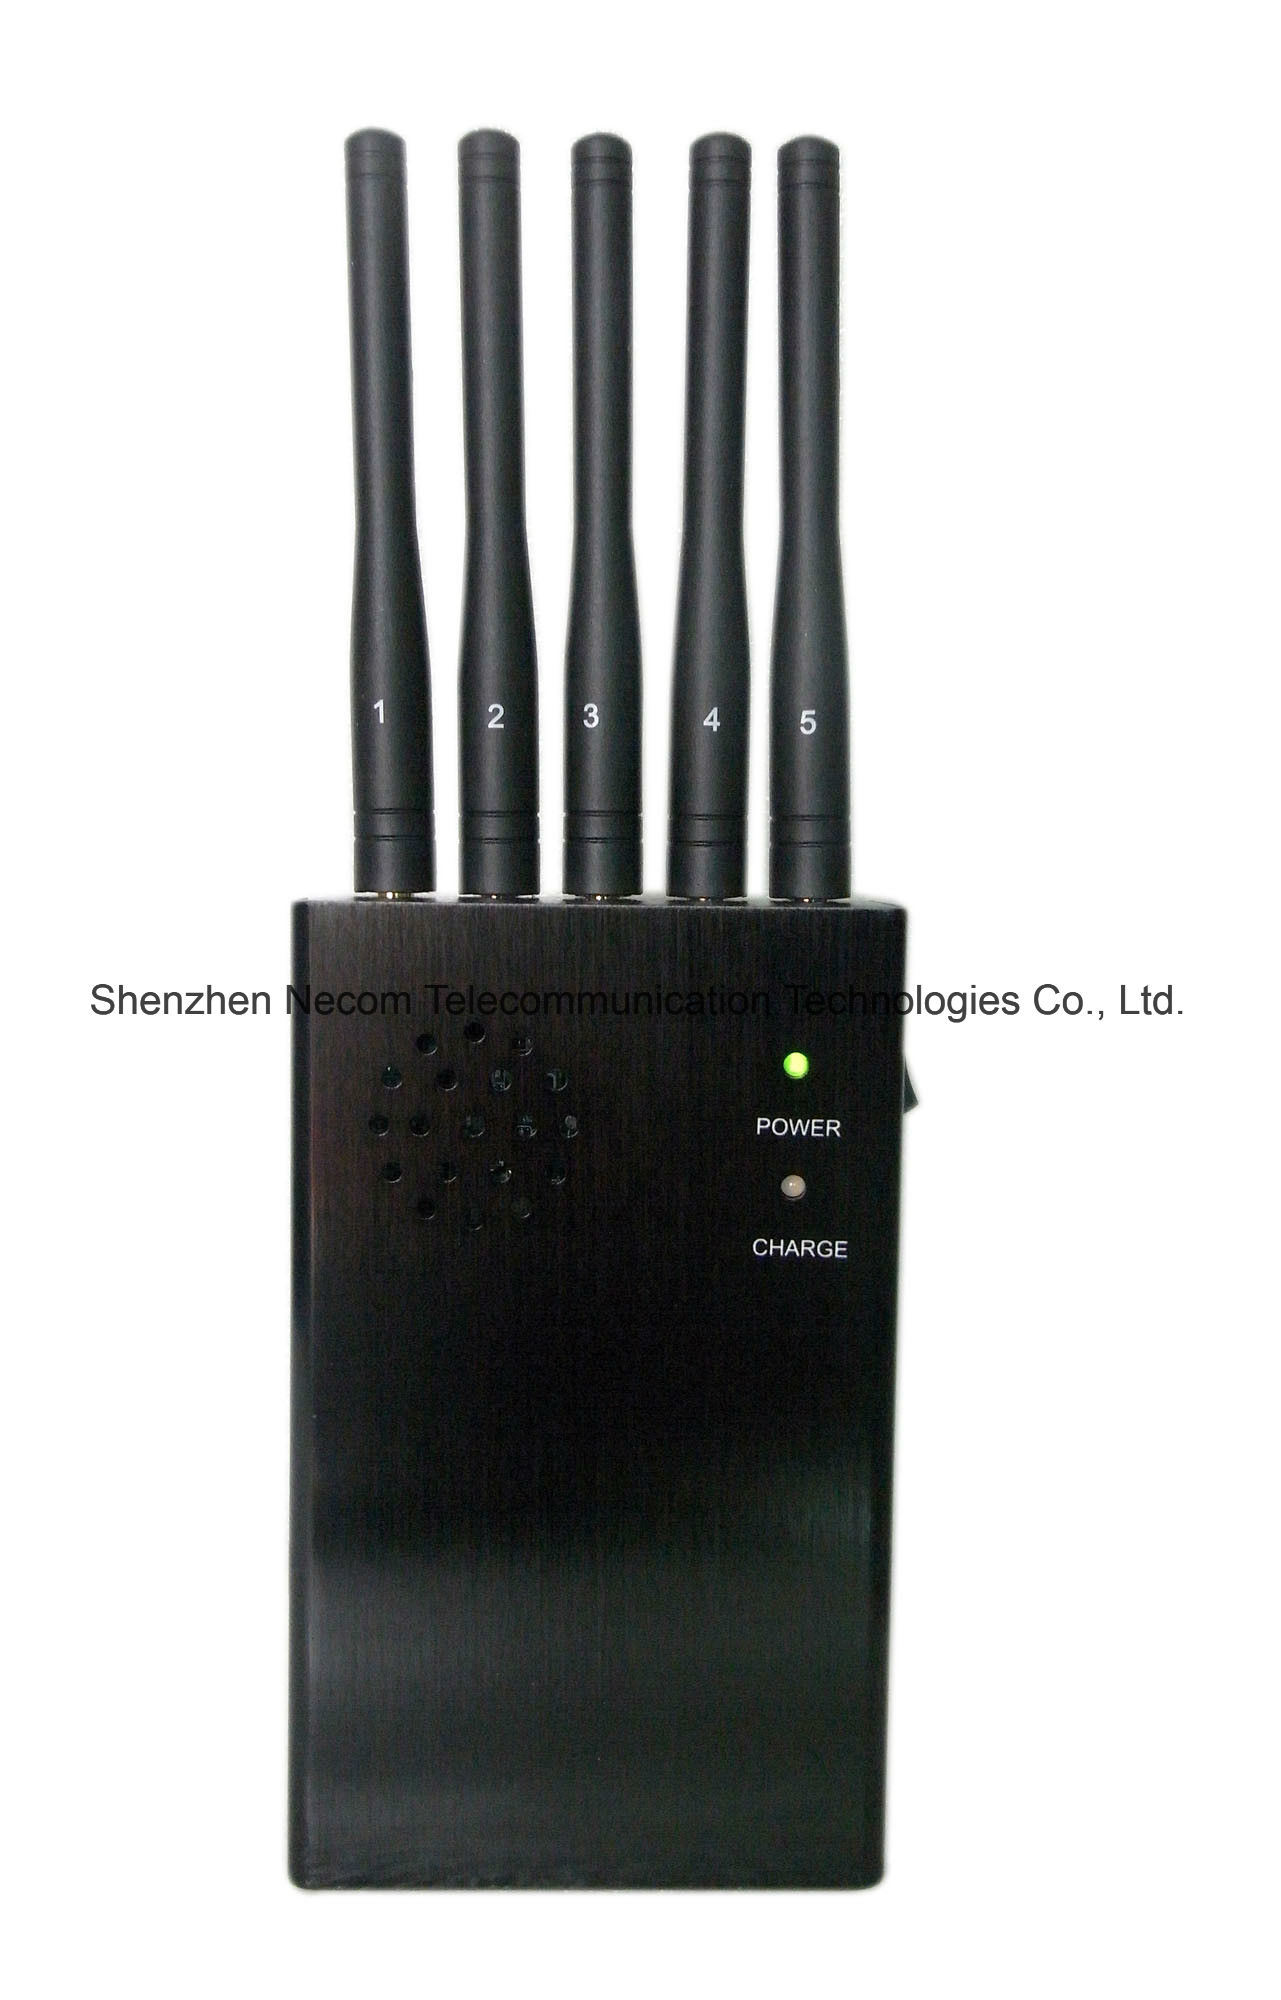 network jammer wifi - China 5 Antenna Handheld Phone Jammer & WiFi Jammer & GPS Jammer, 5bands Handheld Jammer for Cellphone, Wi-Fi, 433, 315 Remote Control Jammer - China 5 Band Signal Blockers, Five Antennas Jammers